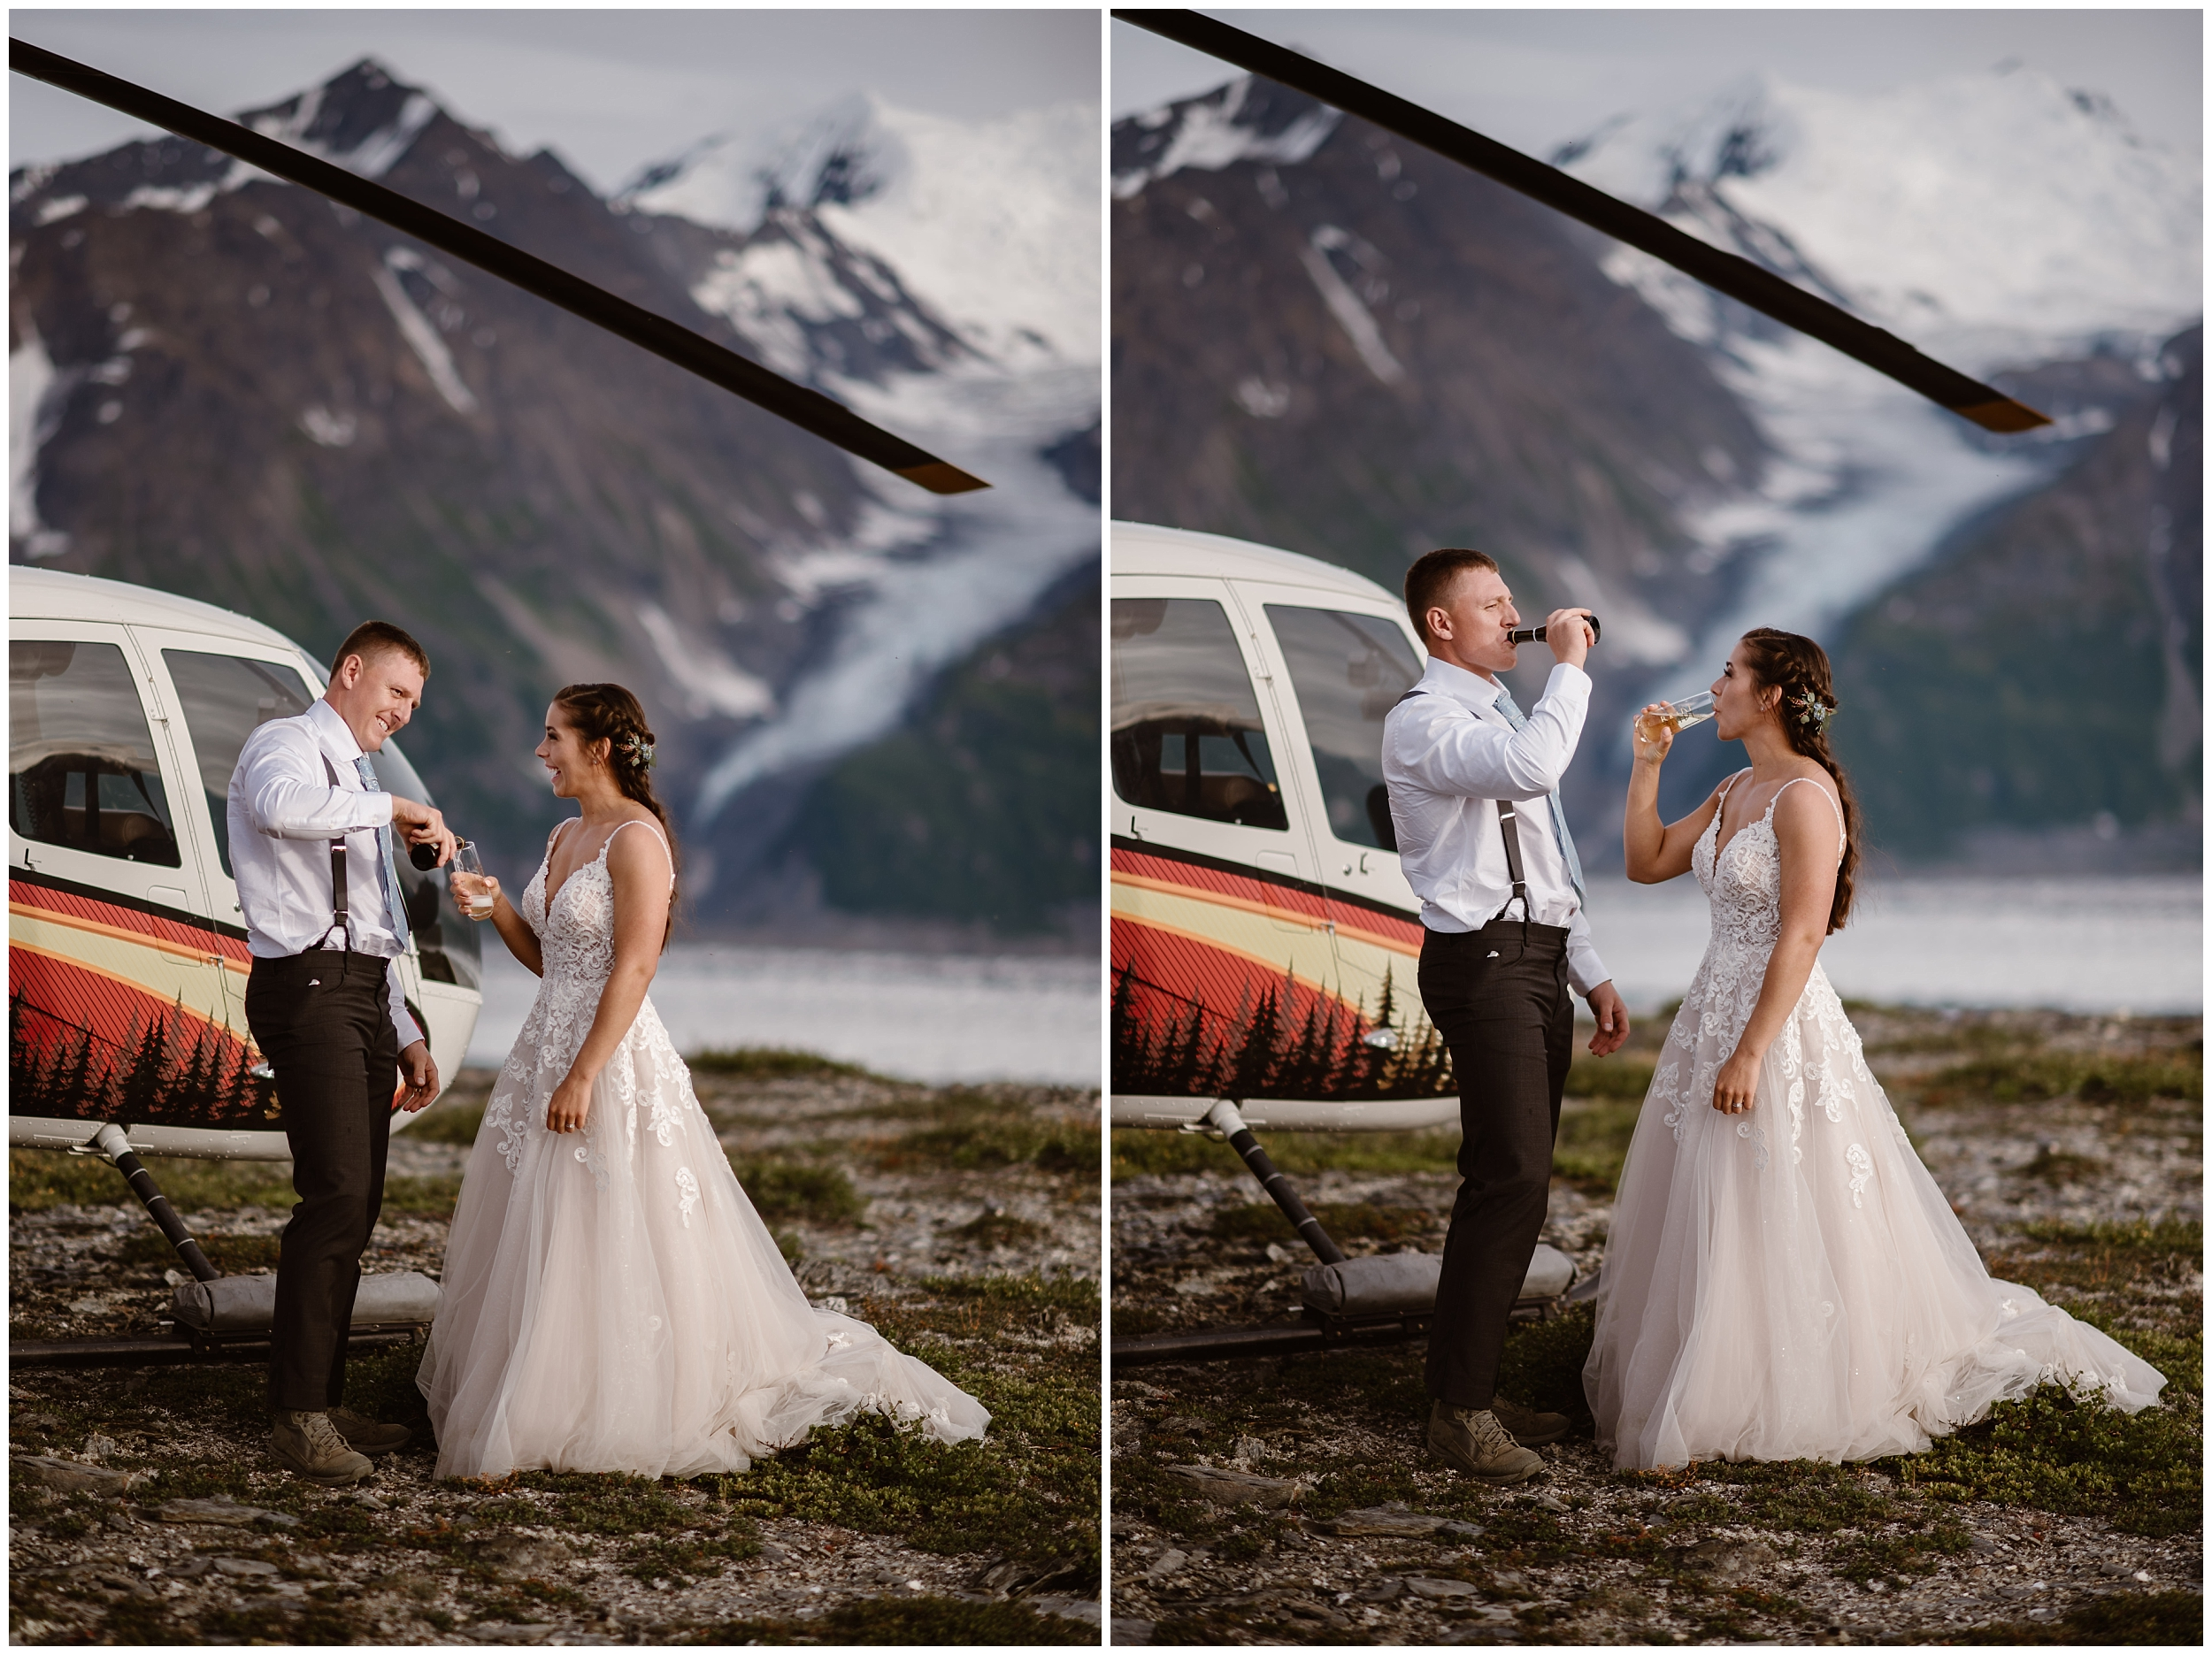 In this side-by-side photo, Jordyn and Connor pour champagne next to the helicopter to celebrate their Alaska helicopter elopement. In the photo on the left, Connor pours champagne into a glass for Jordyn after their elopement ceremony. In the photo on the right, the two drink their champagne together during their destination elopement.